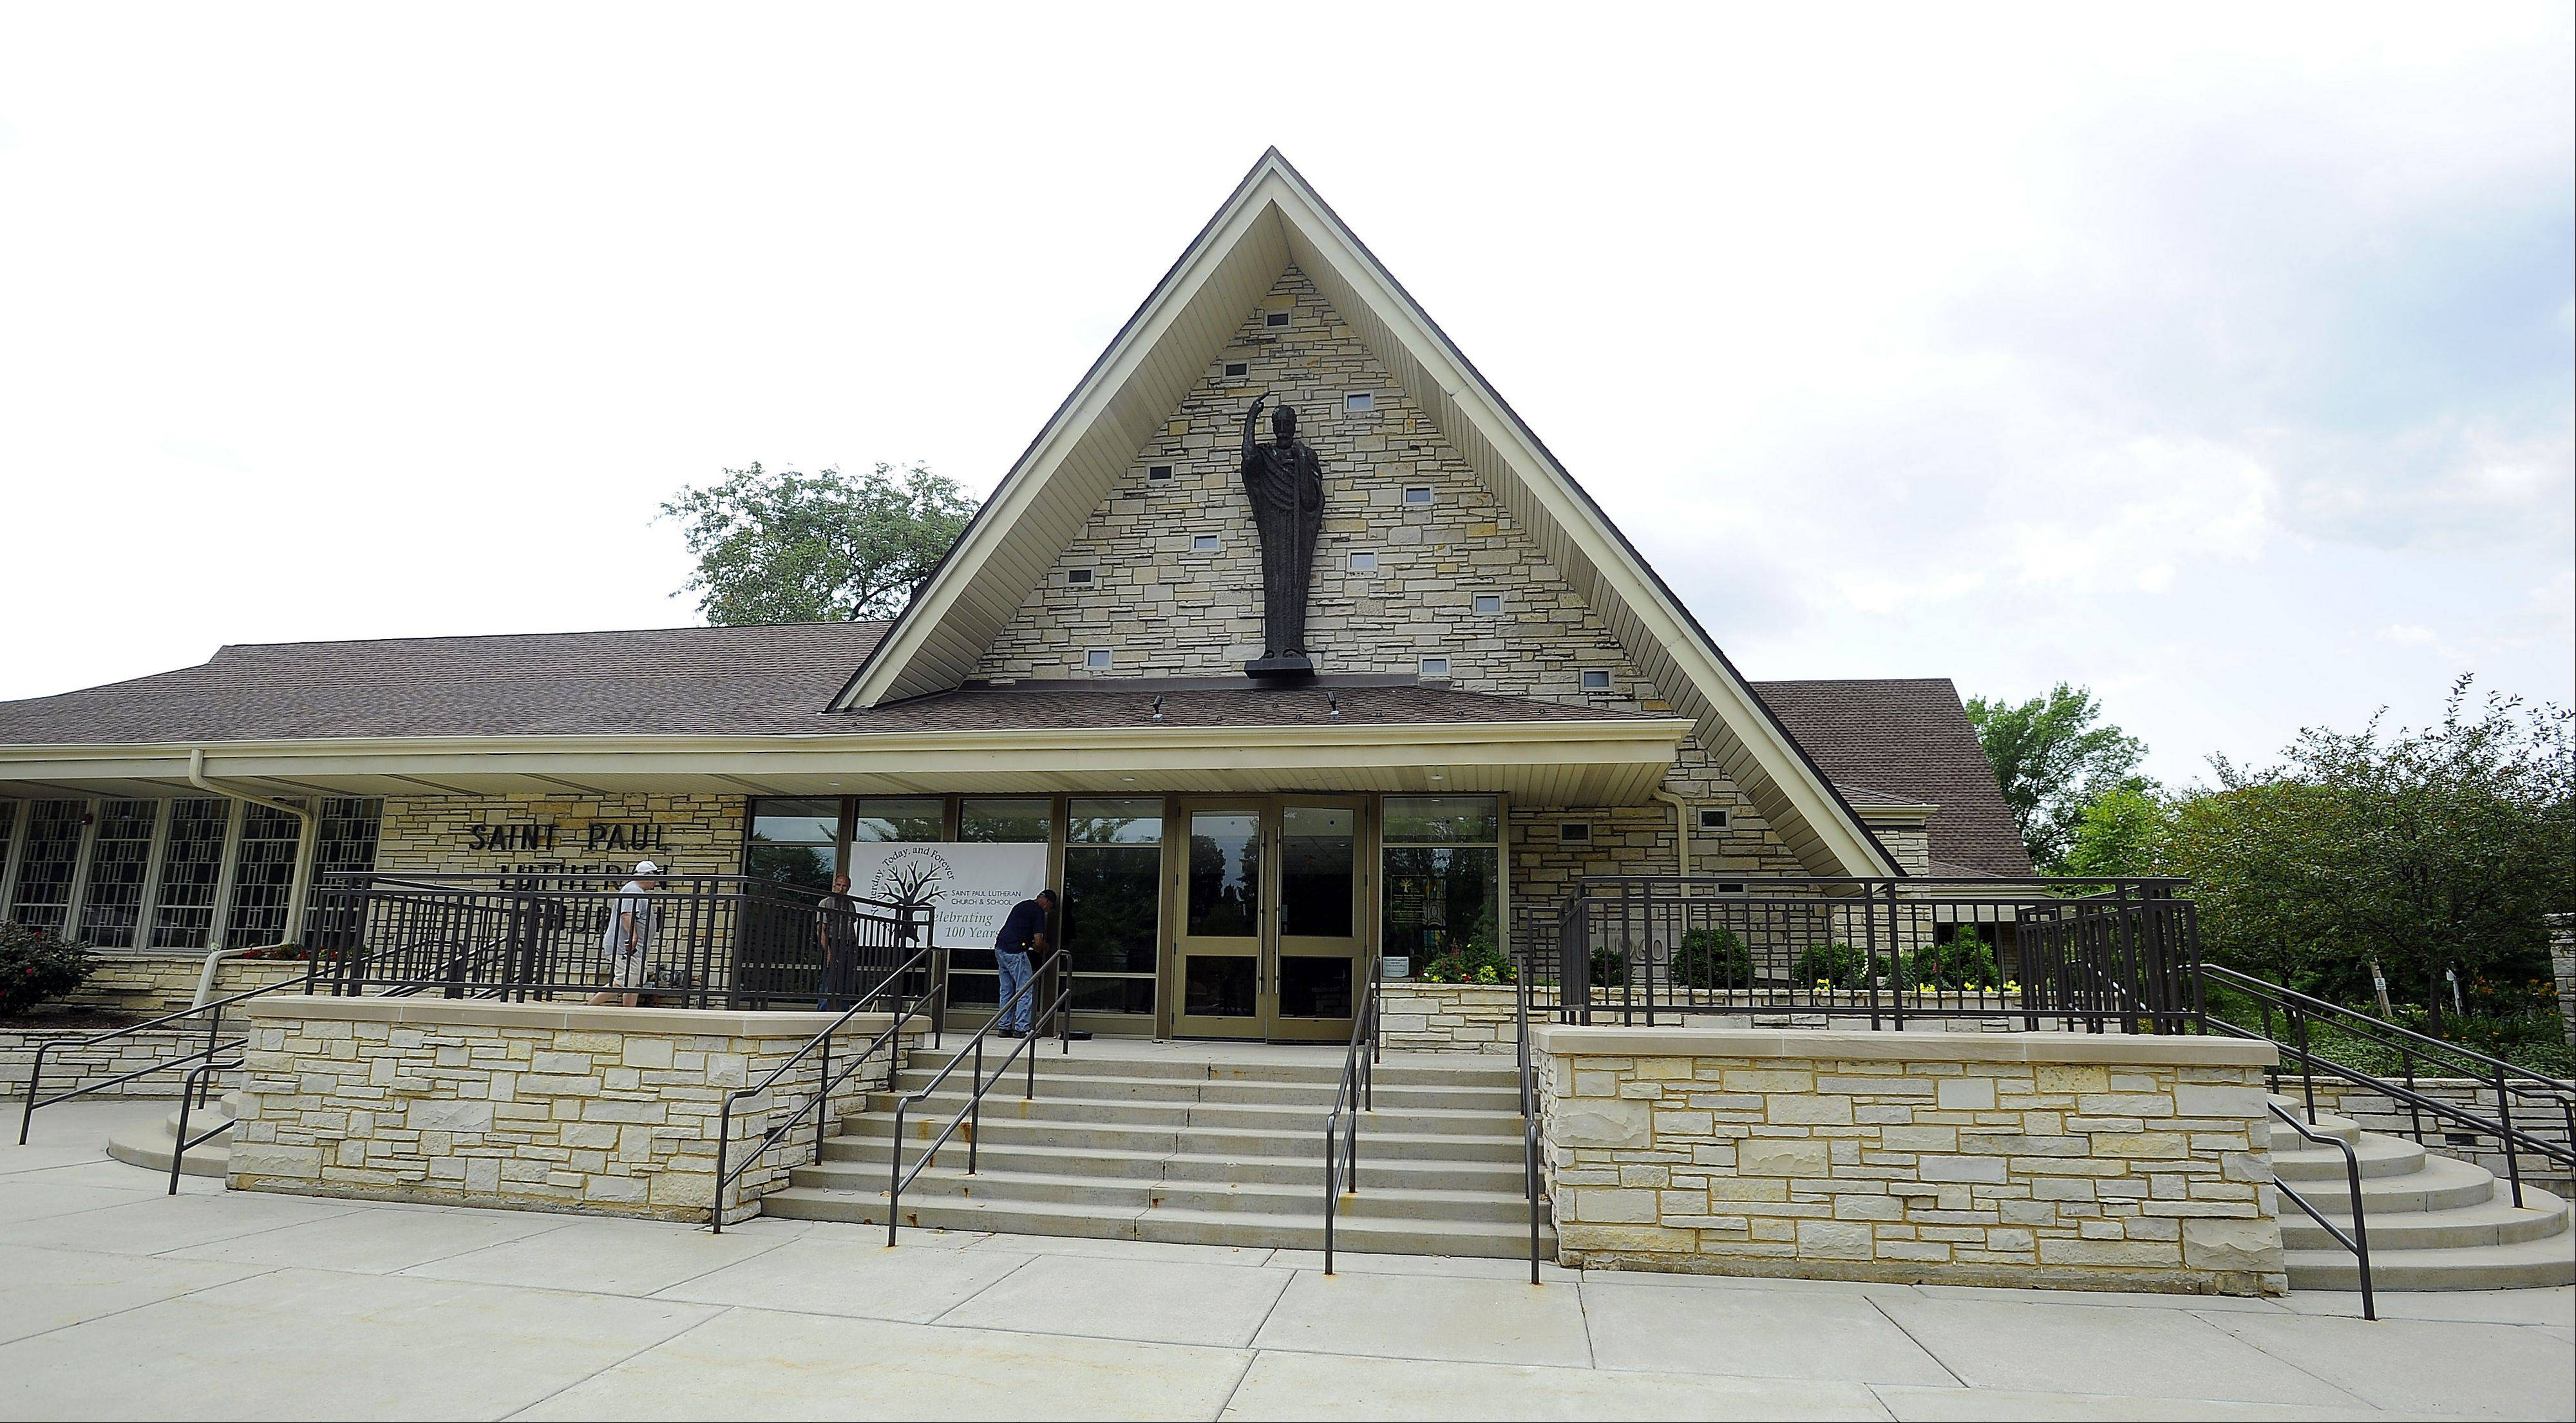 St. Paul Lutheran Church in Mount Prospect celebrates its 100th anniversary.